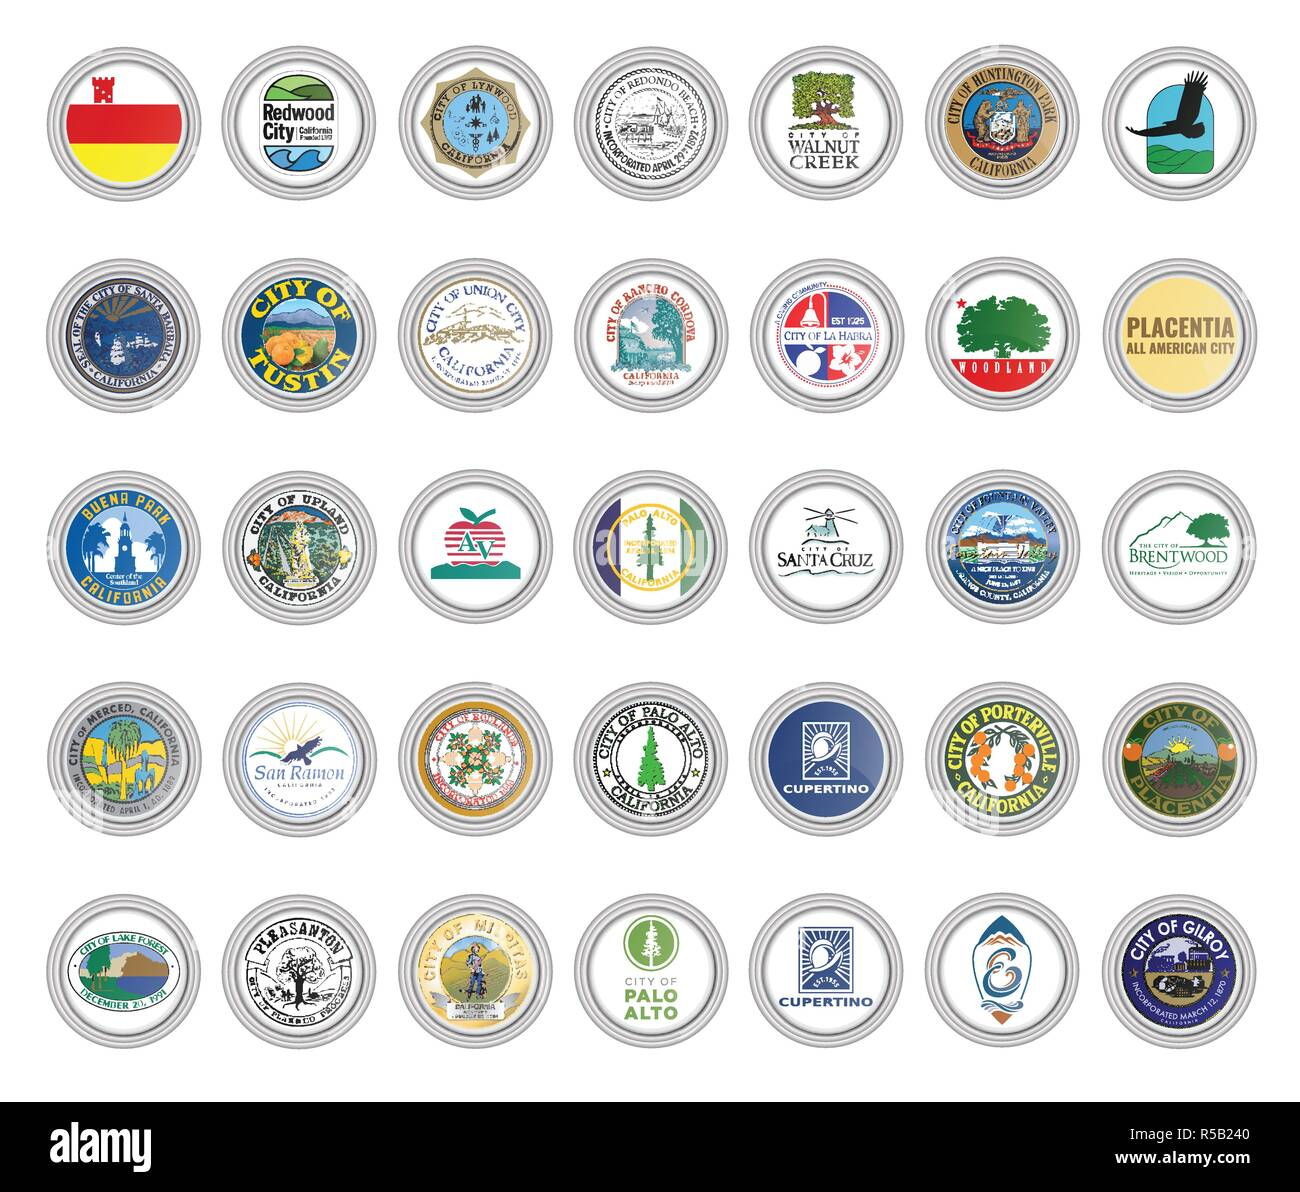 Set of vector icons. Flags and seals of cities, California state, USA. 3D illustration. - Stock Image